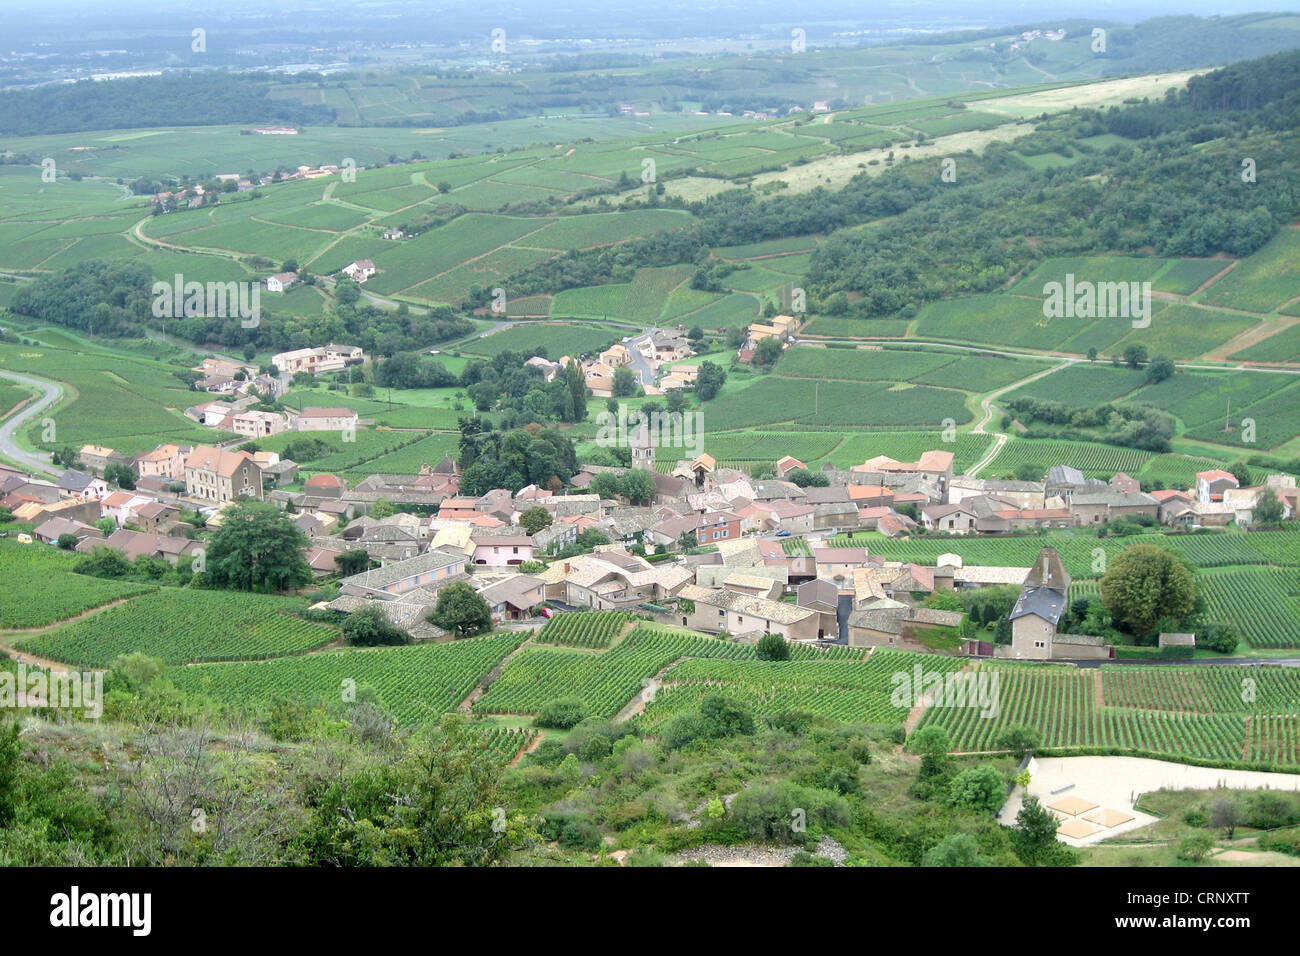 A village in the northern France countryside - Stock Image